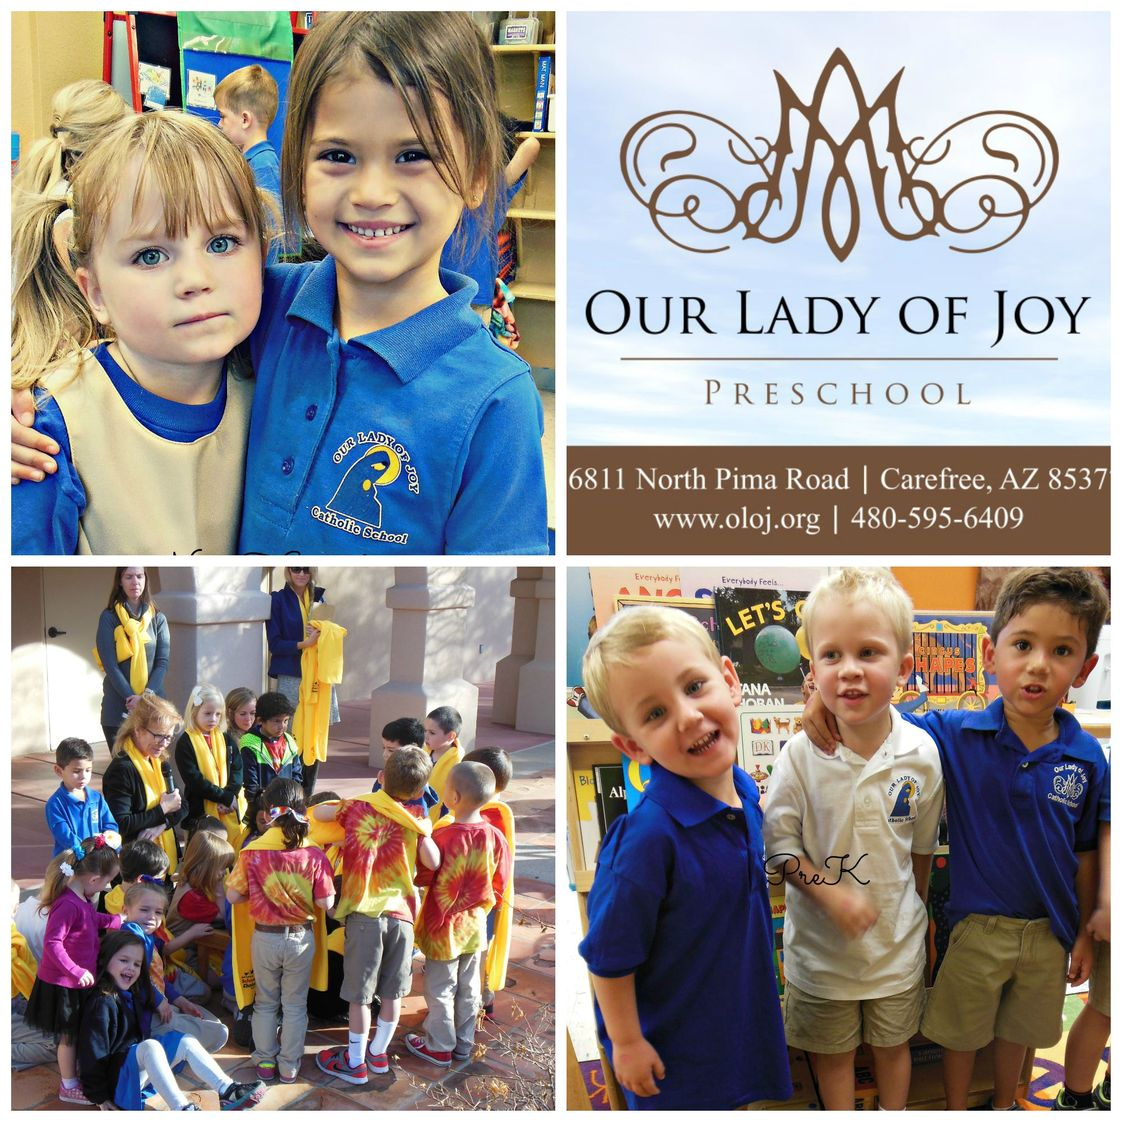 Our Lady Of Joy Photo - Our Lady of Joy Catholic Preschool is a faith filled school community driven by academic excellence. We are regarded as the top preschool in the North Valley area.